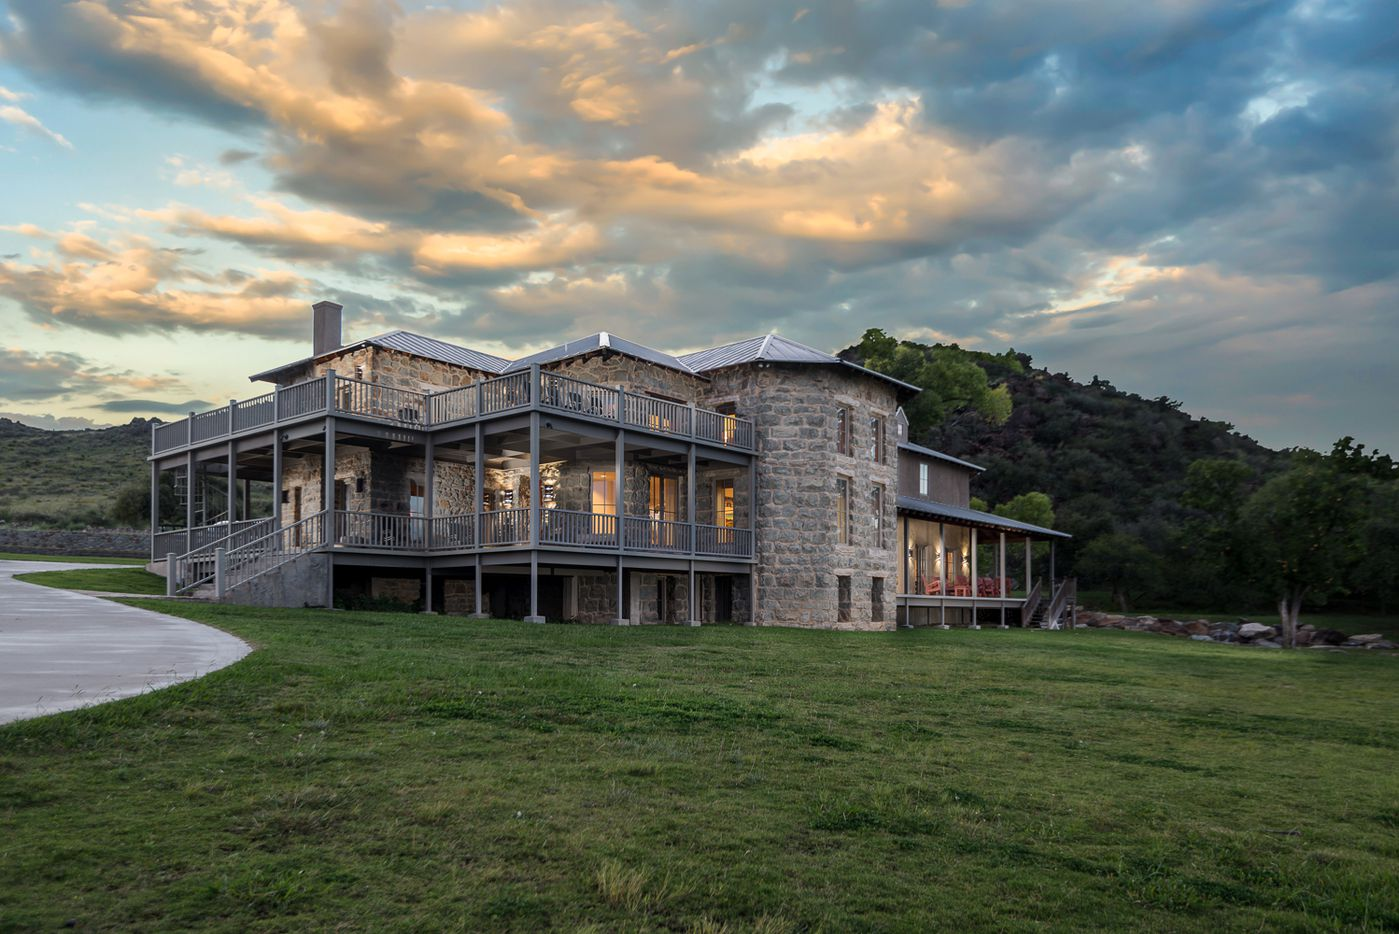 The KC7 Ranch is in far West Texas in the Davis Mountains and includes a 10,00-square-foot lodge.